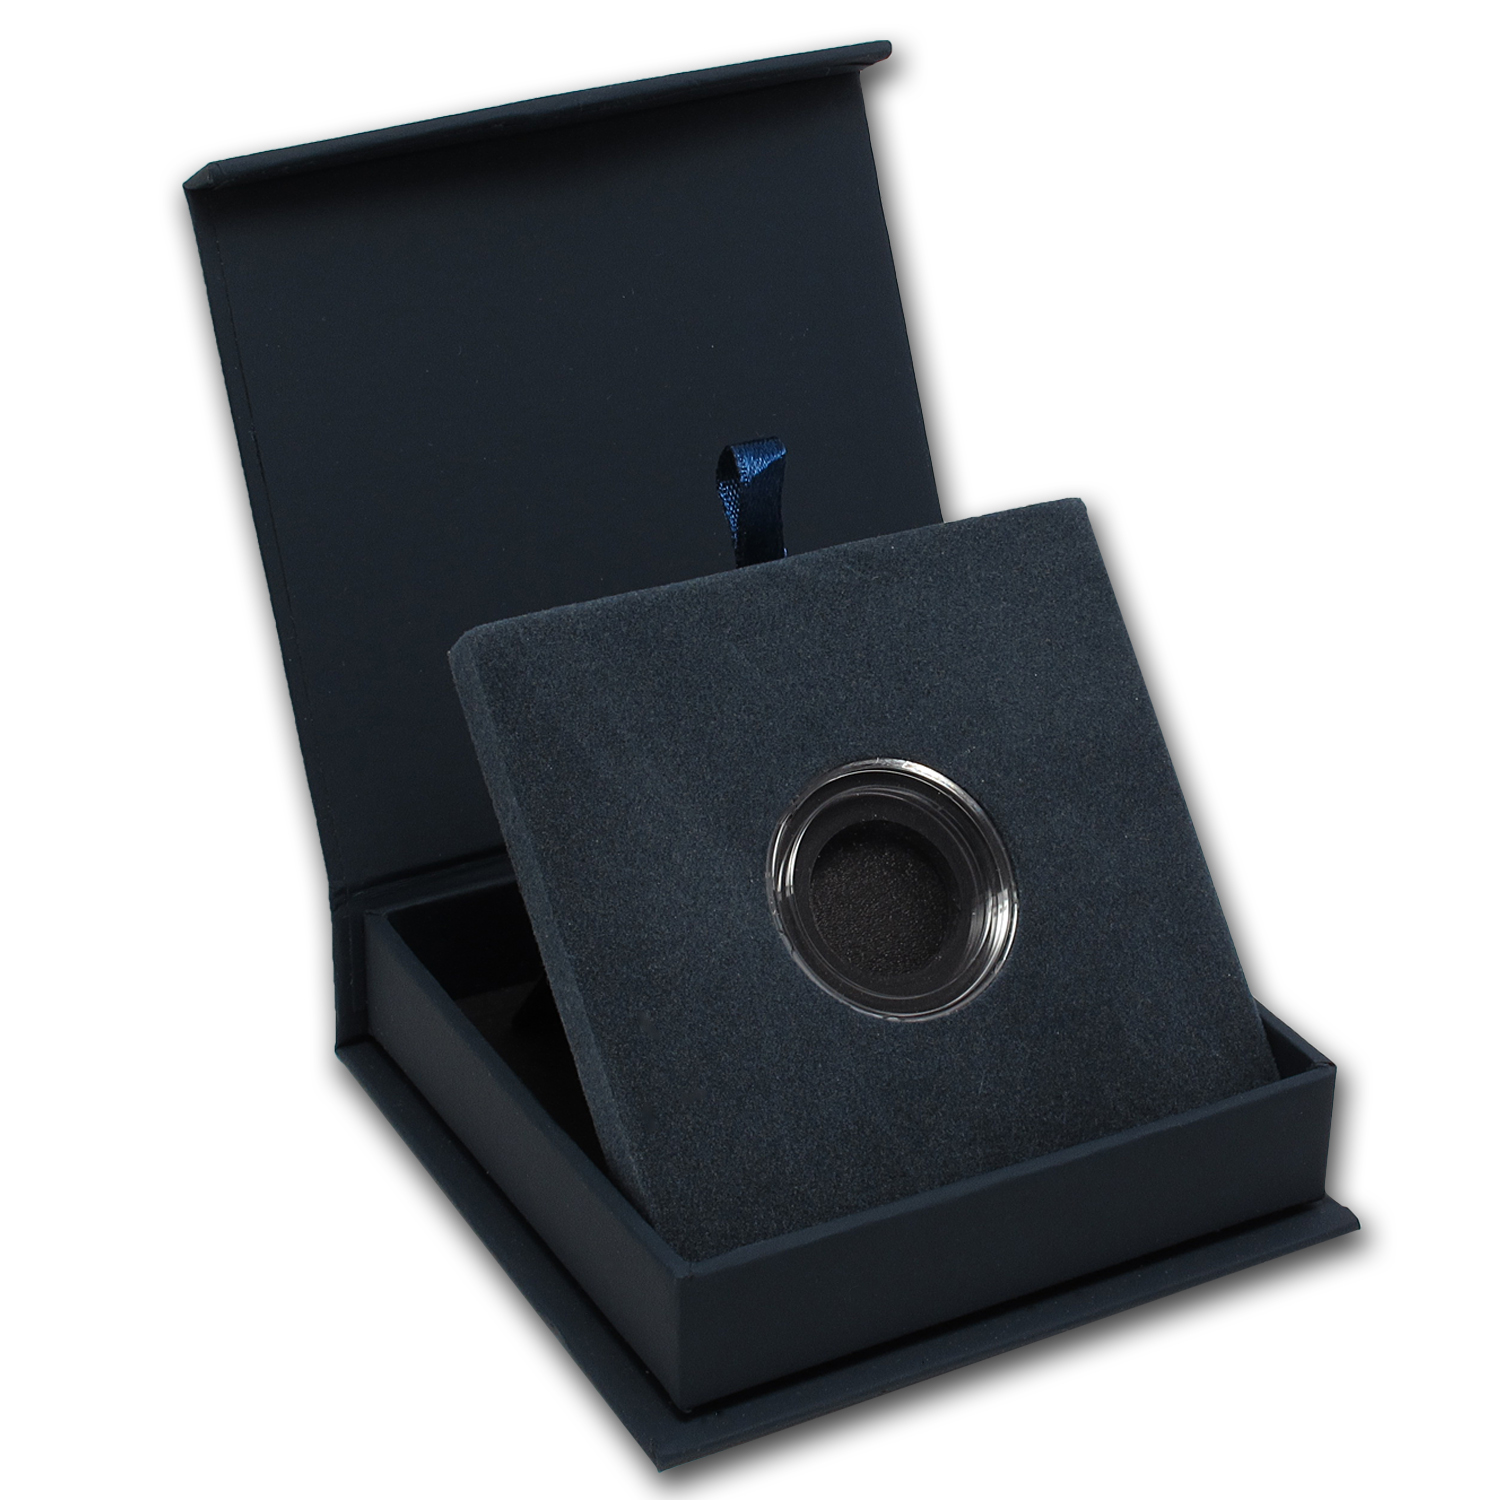 APMEX Gift Box - Includes 24 mm Direct Fit Air-Tite Holder